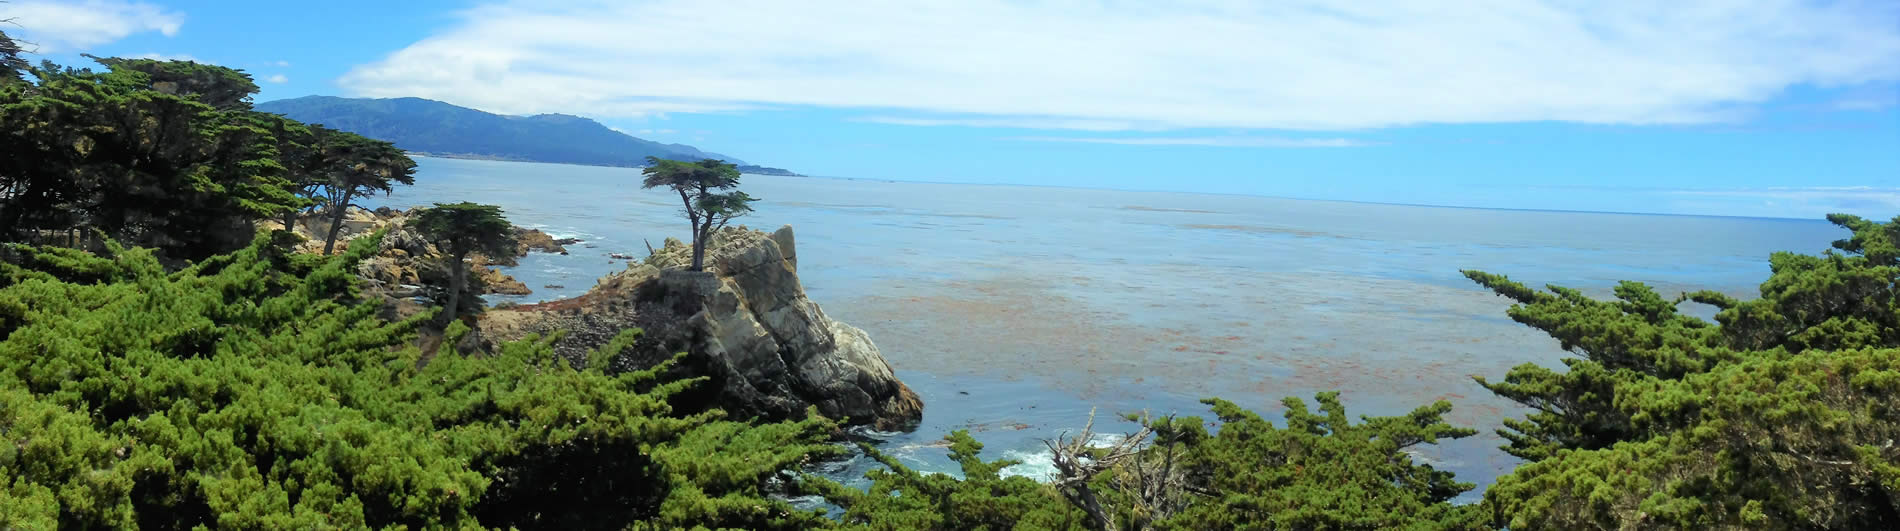 lone cypress beach scene in pebble beach